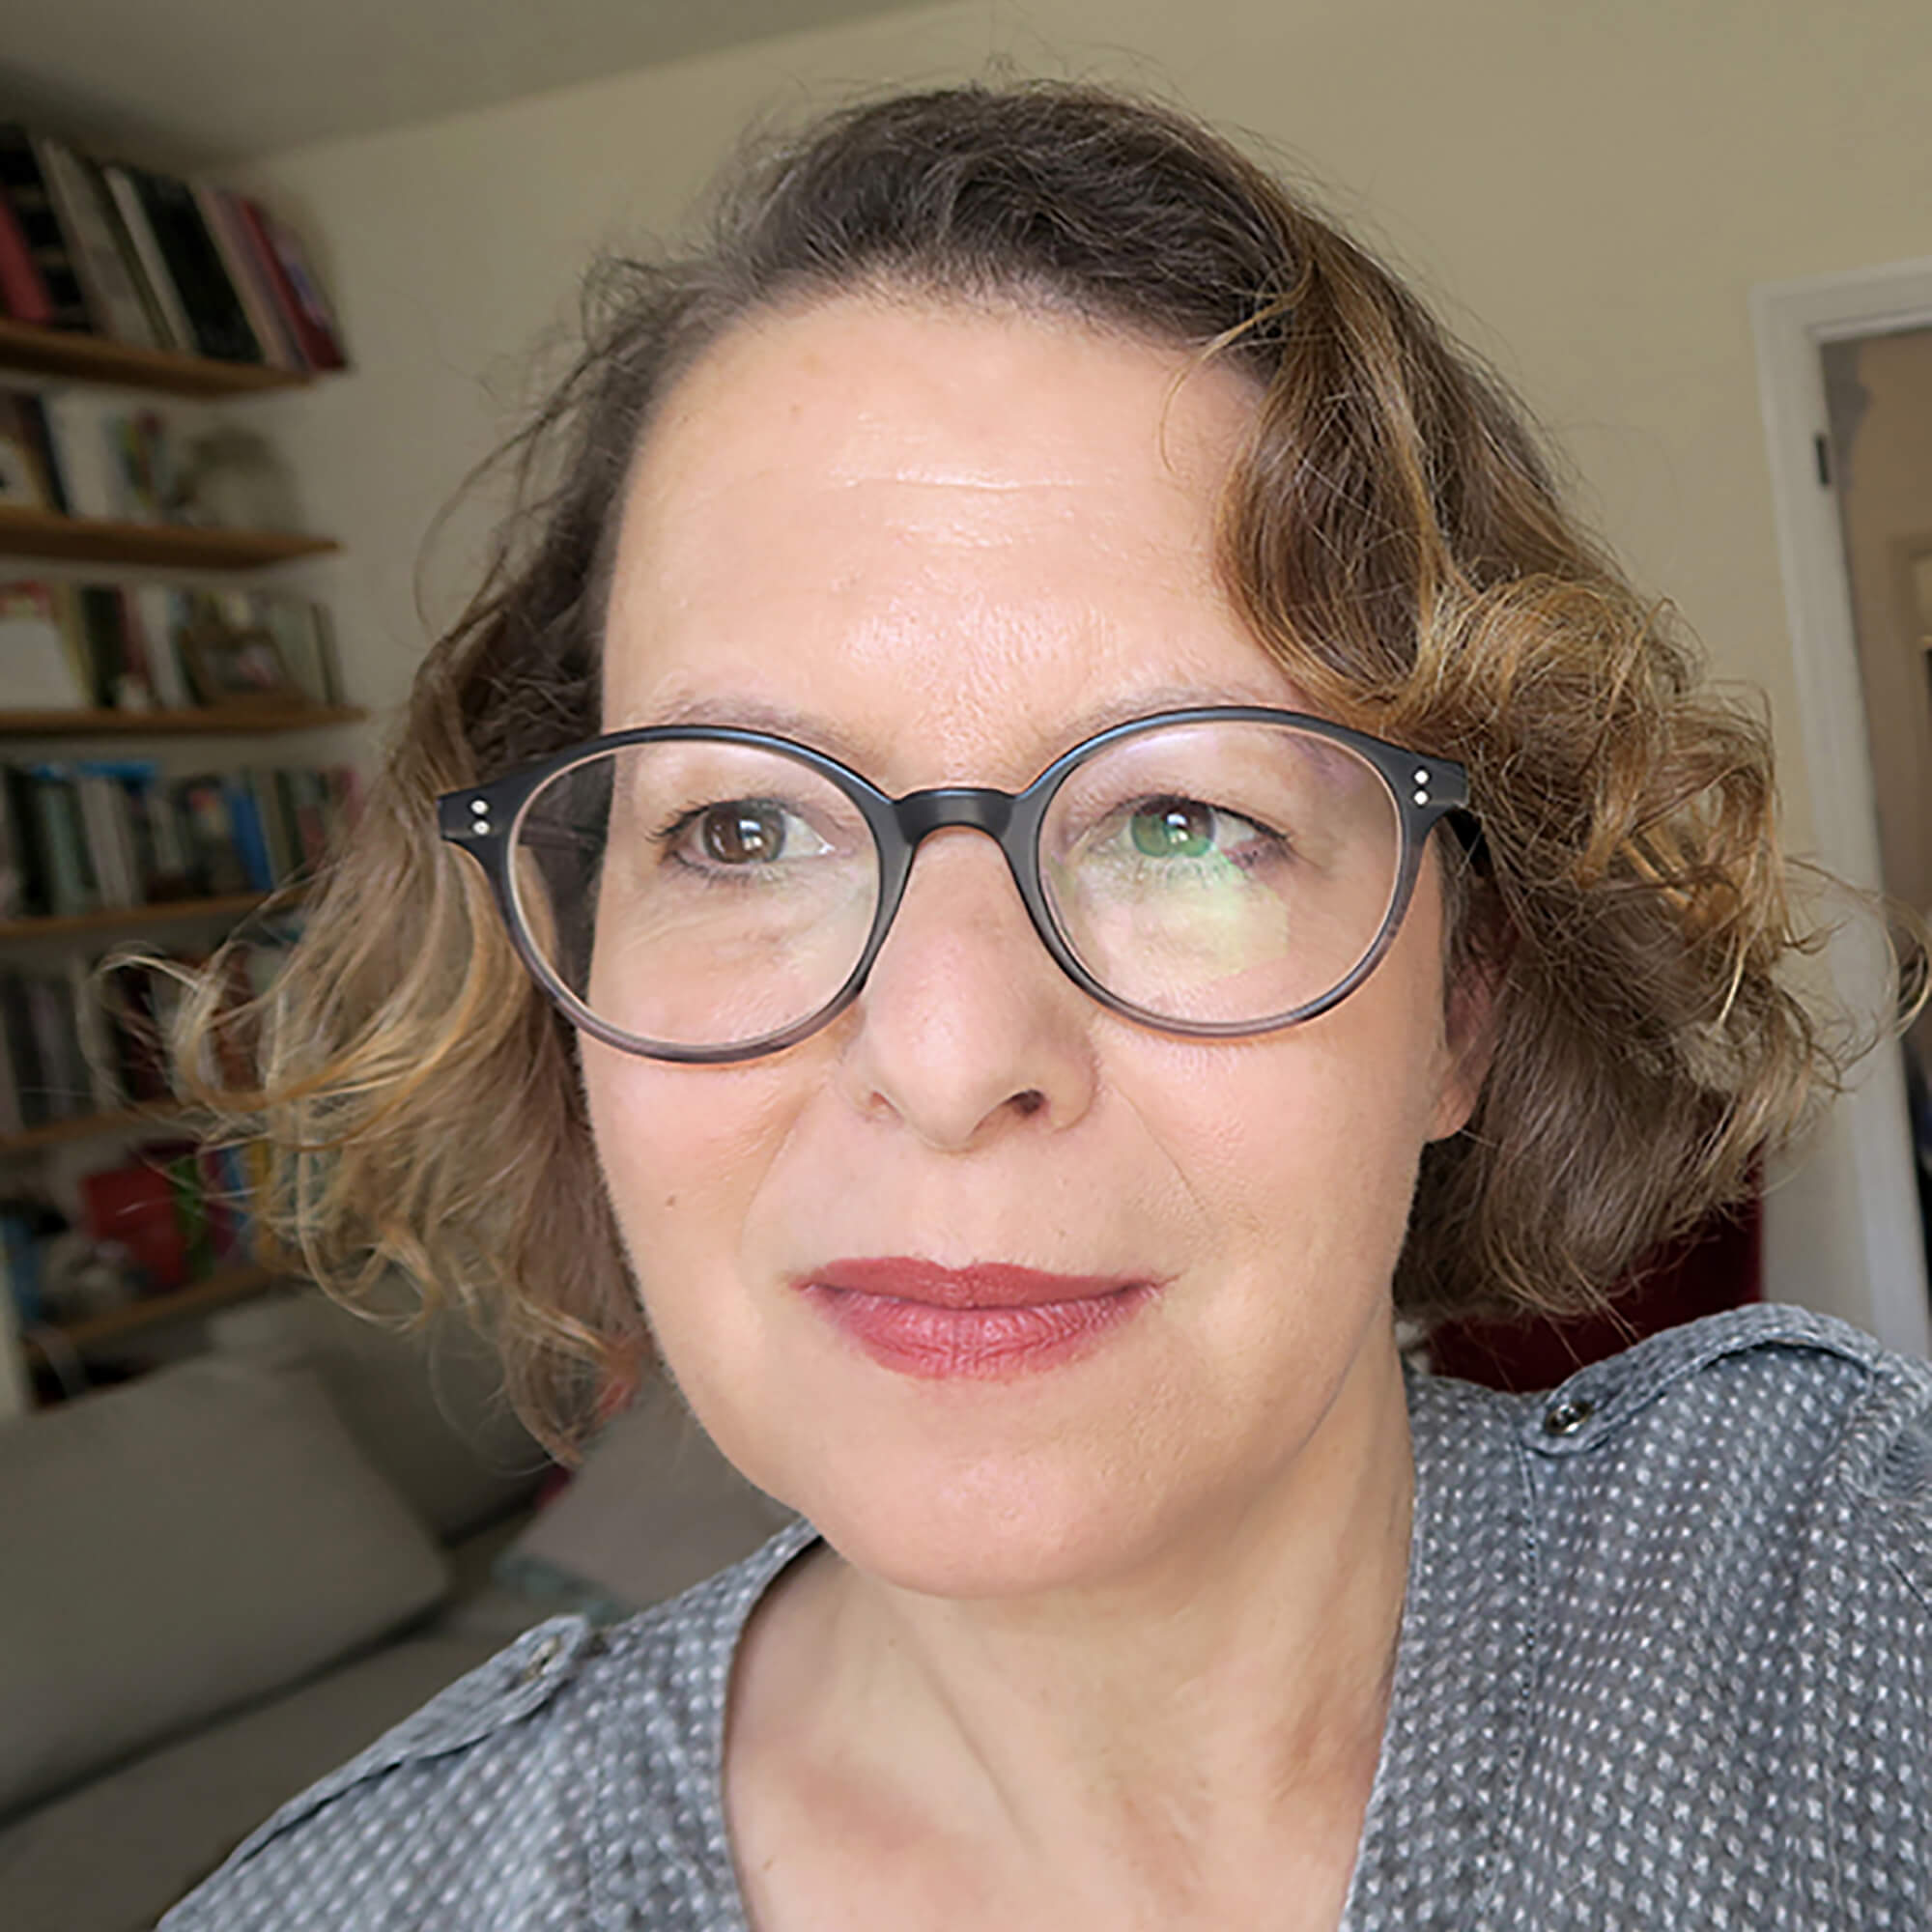 Vered wearing glasses- smiling in front of a bookcase.